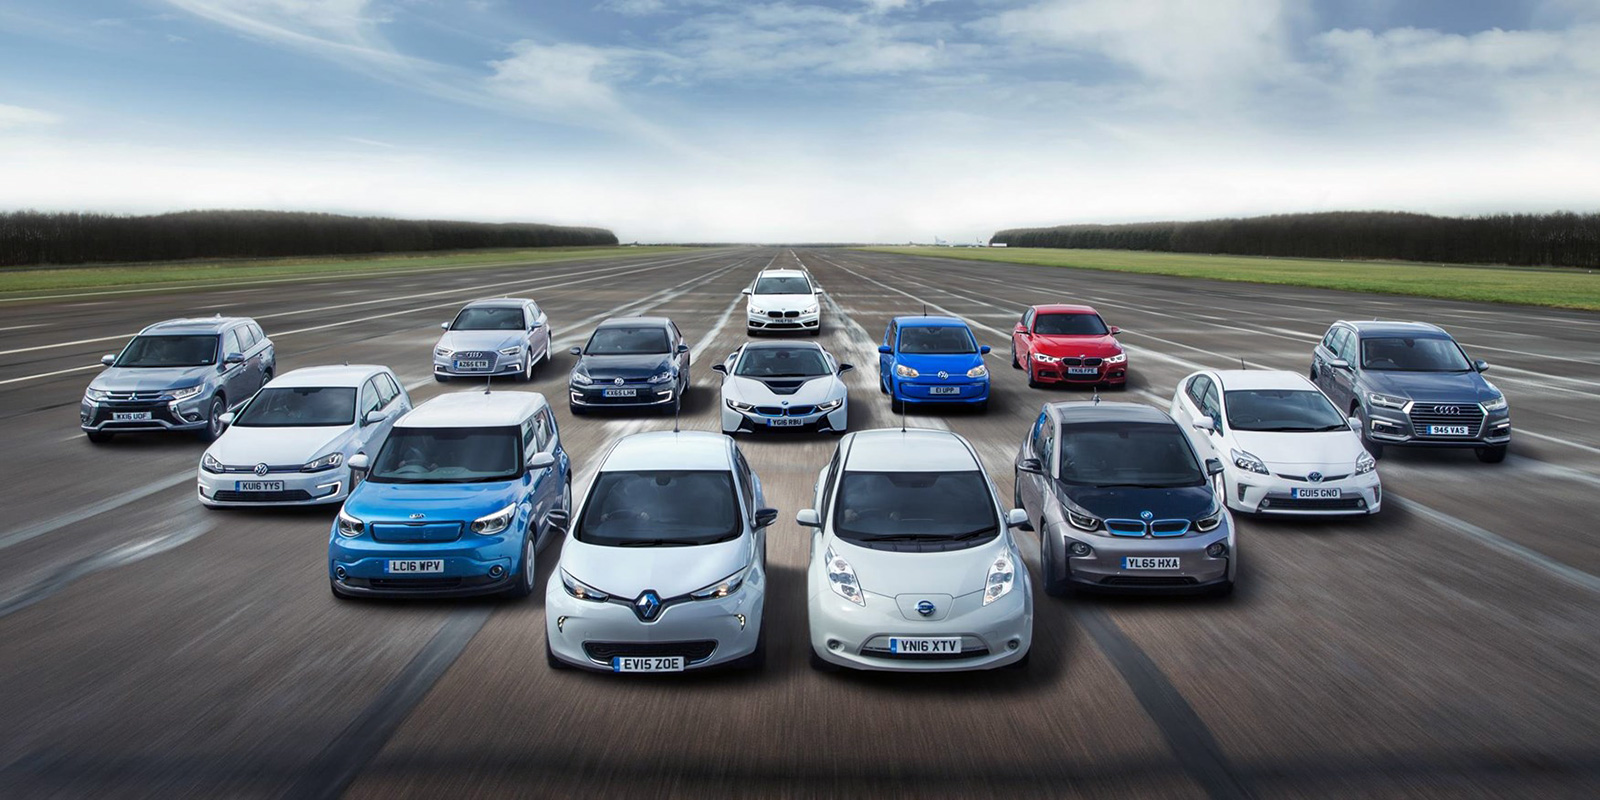 Why Europe will see the world's biggest EV uptick in 2020